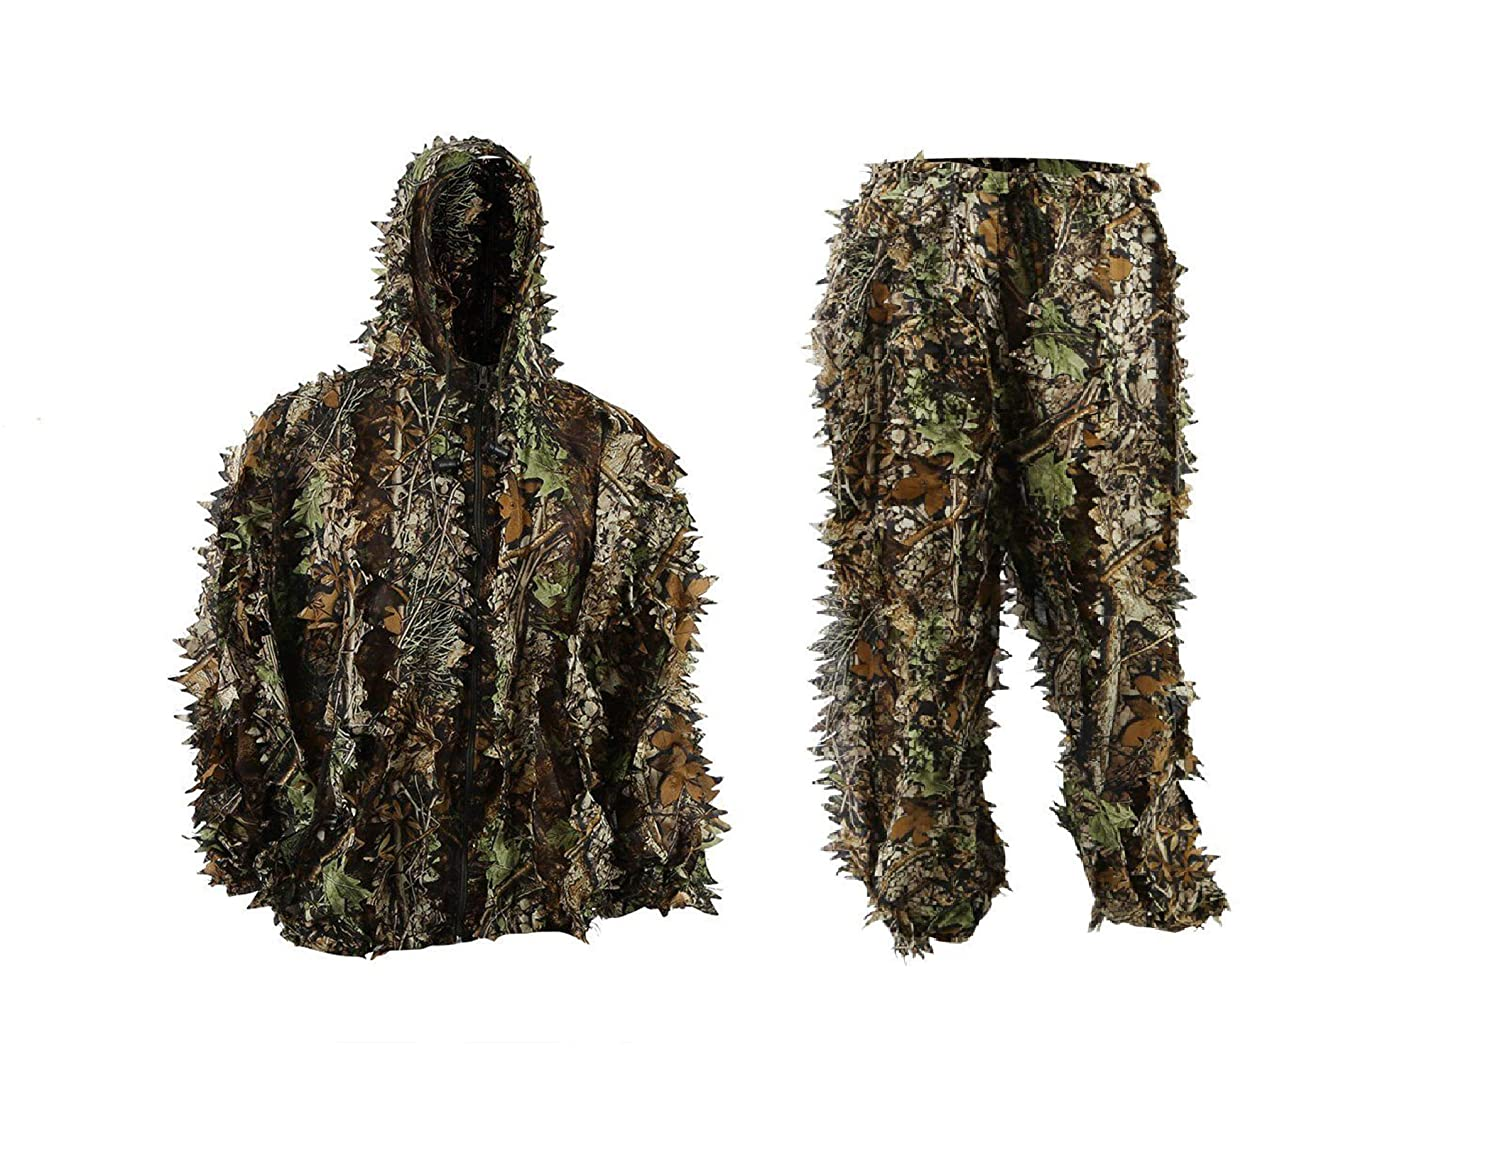 f05f4c6e4379c When you zip the jacket up, the leaves won\'t get caught in the zipper,  very comfortable and quiet. Size: Clothes length:26.77 inches, sleeve:  30.31 inches ...